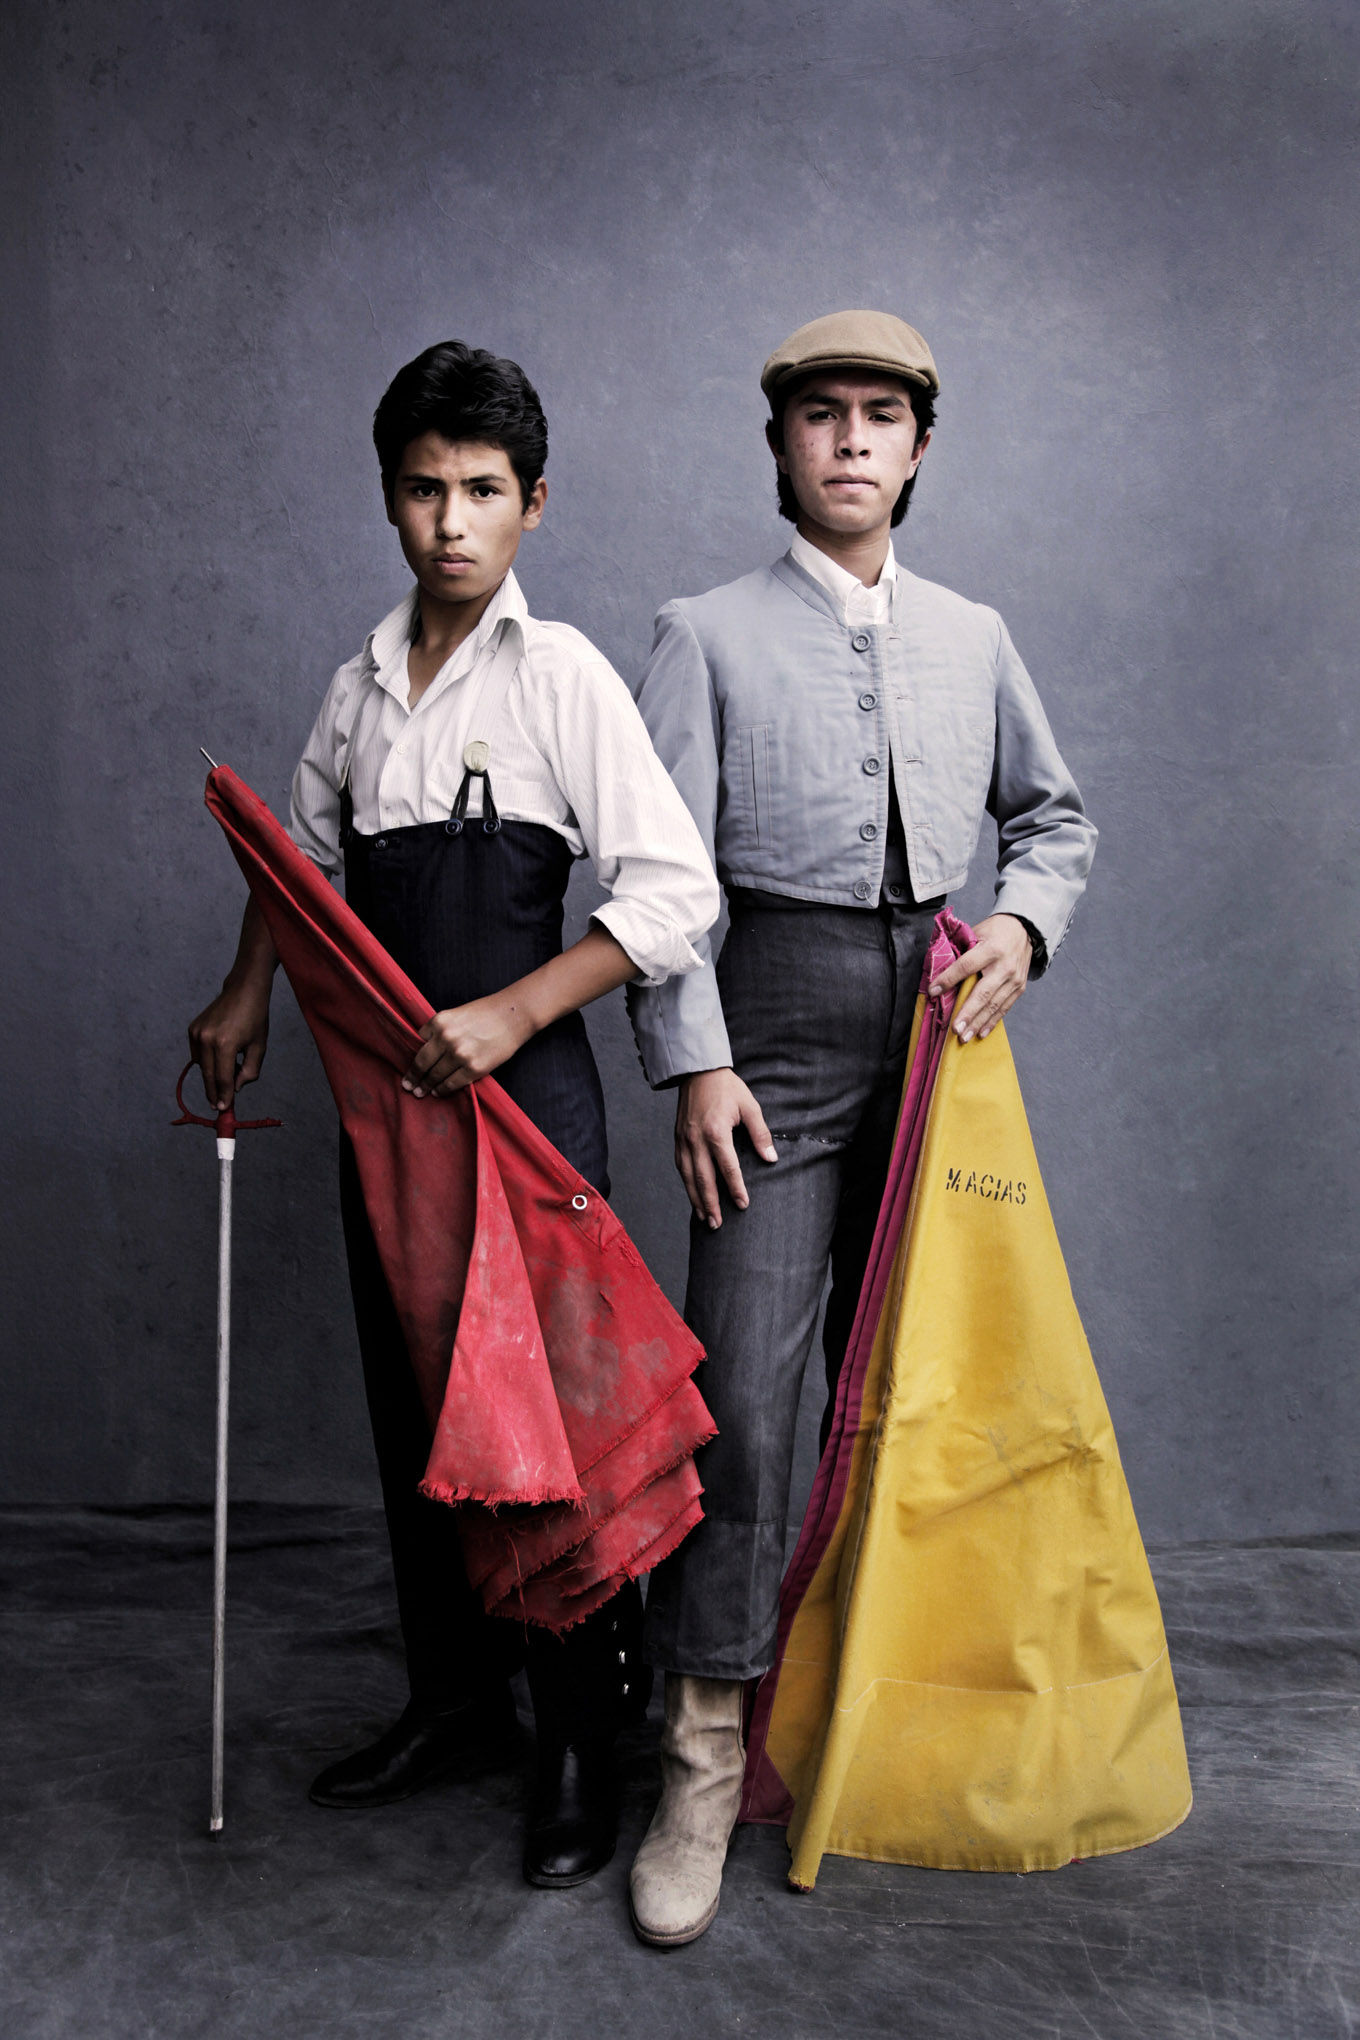 Bullfighters/Mexico